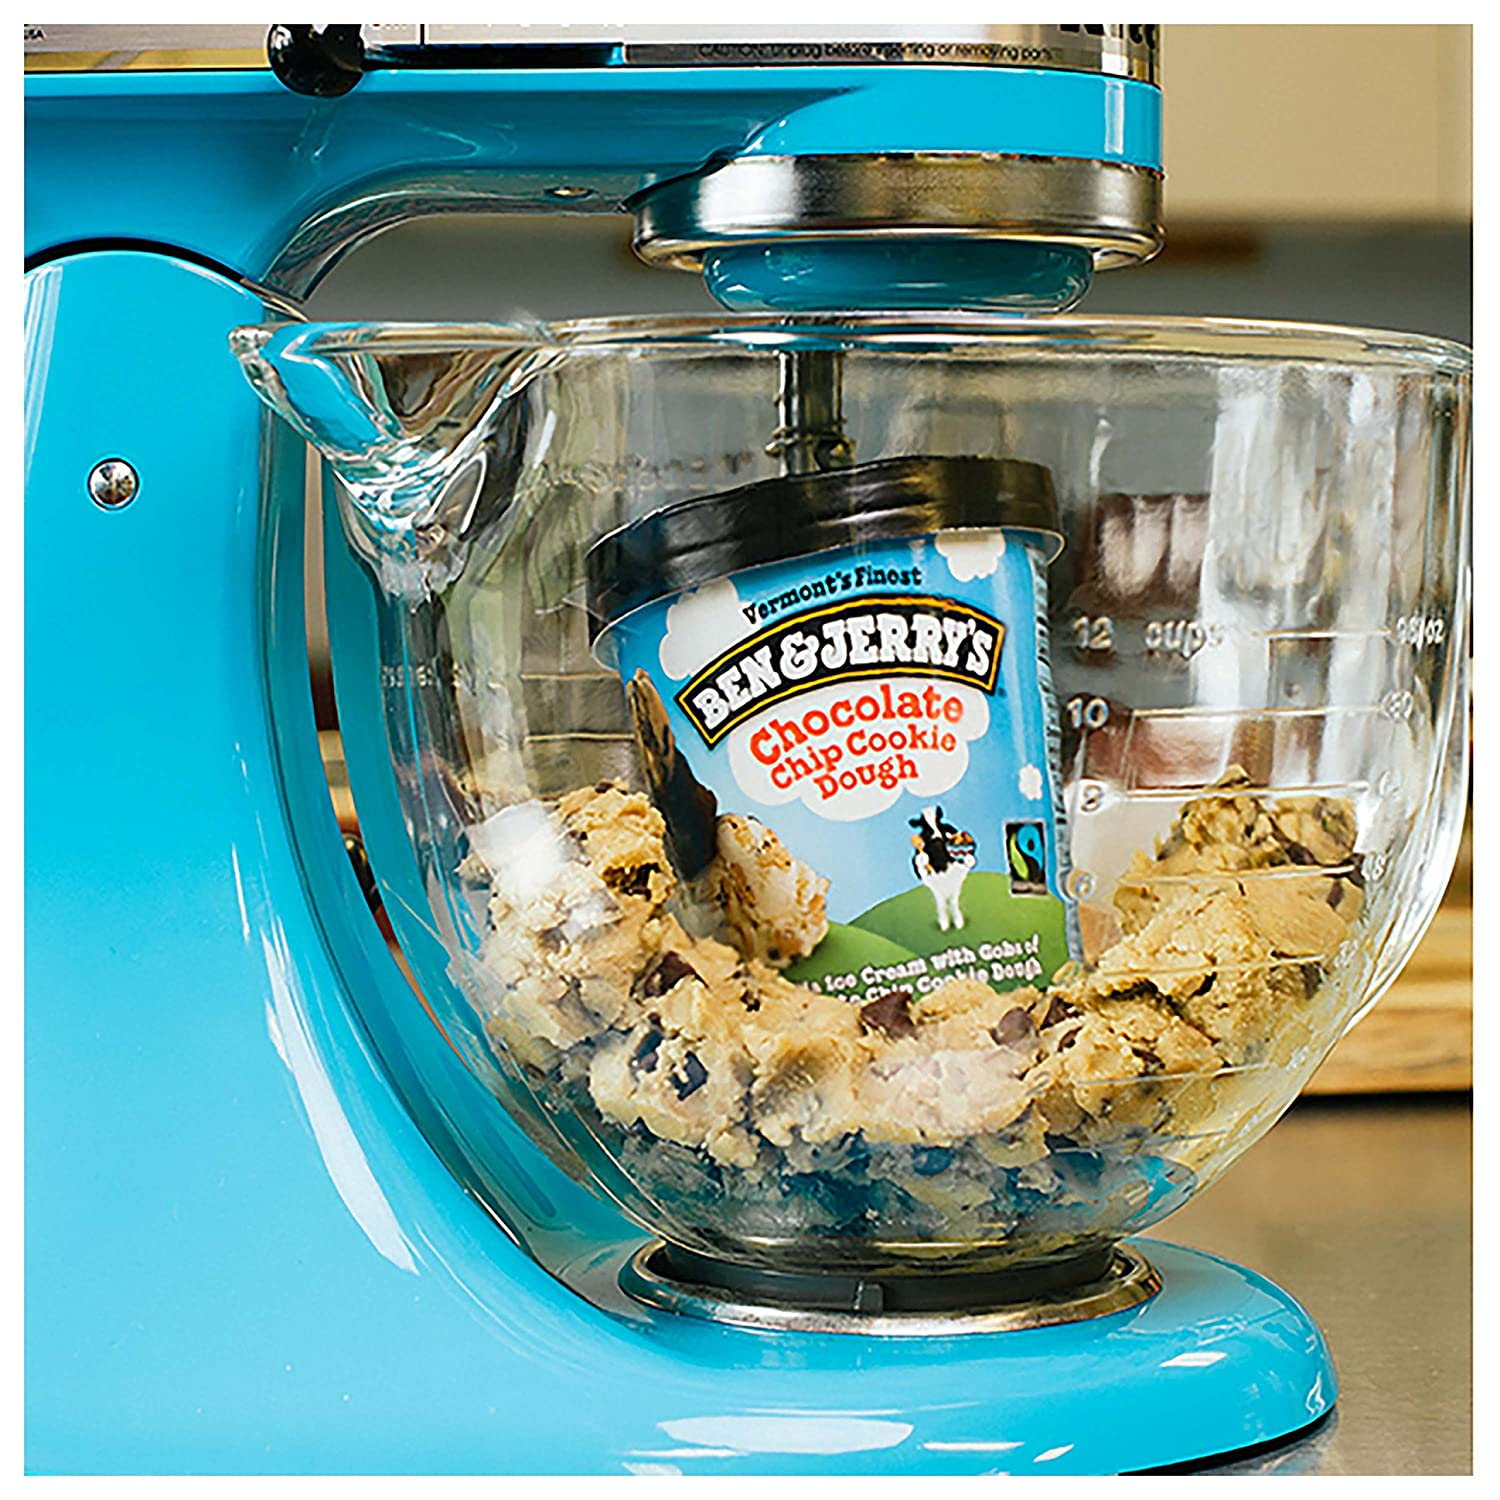 Ben & Jerry\'s Ice Cream, Chocolate Chip Cookie Dough, 16 oz: Amazon ...